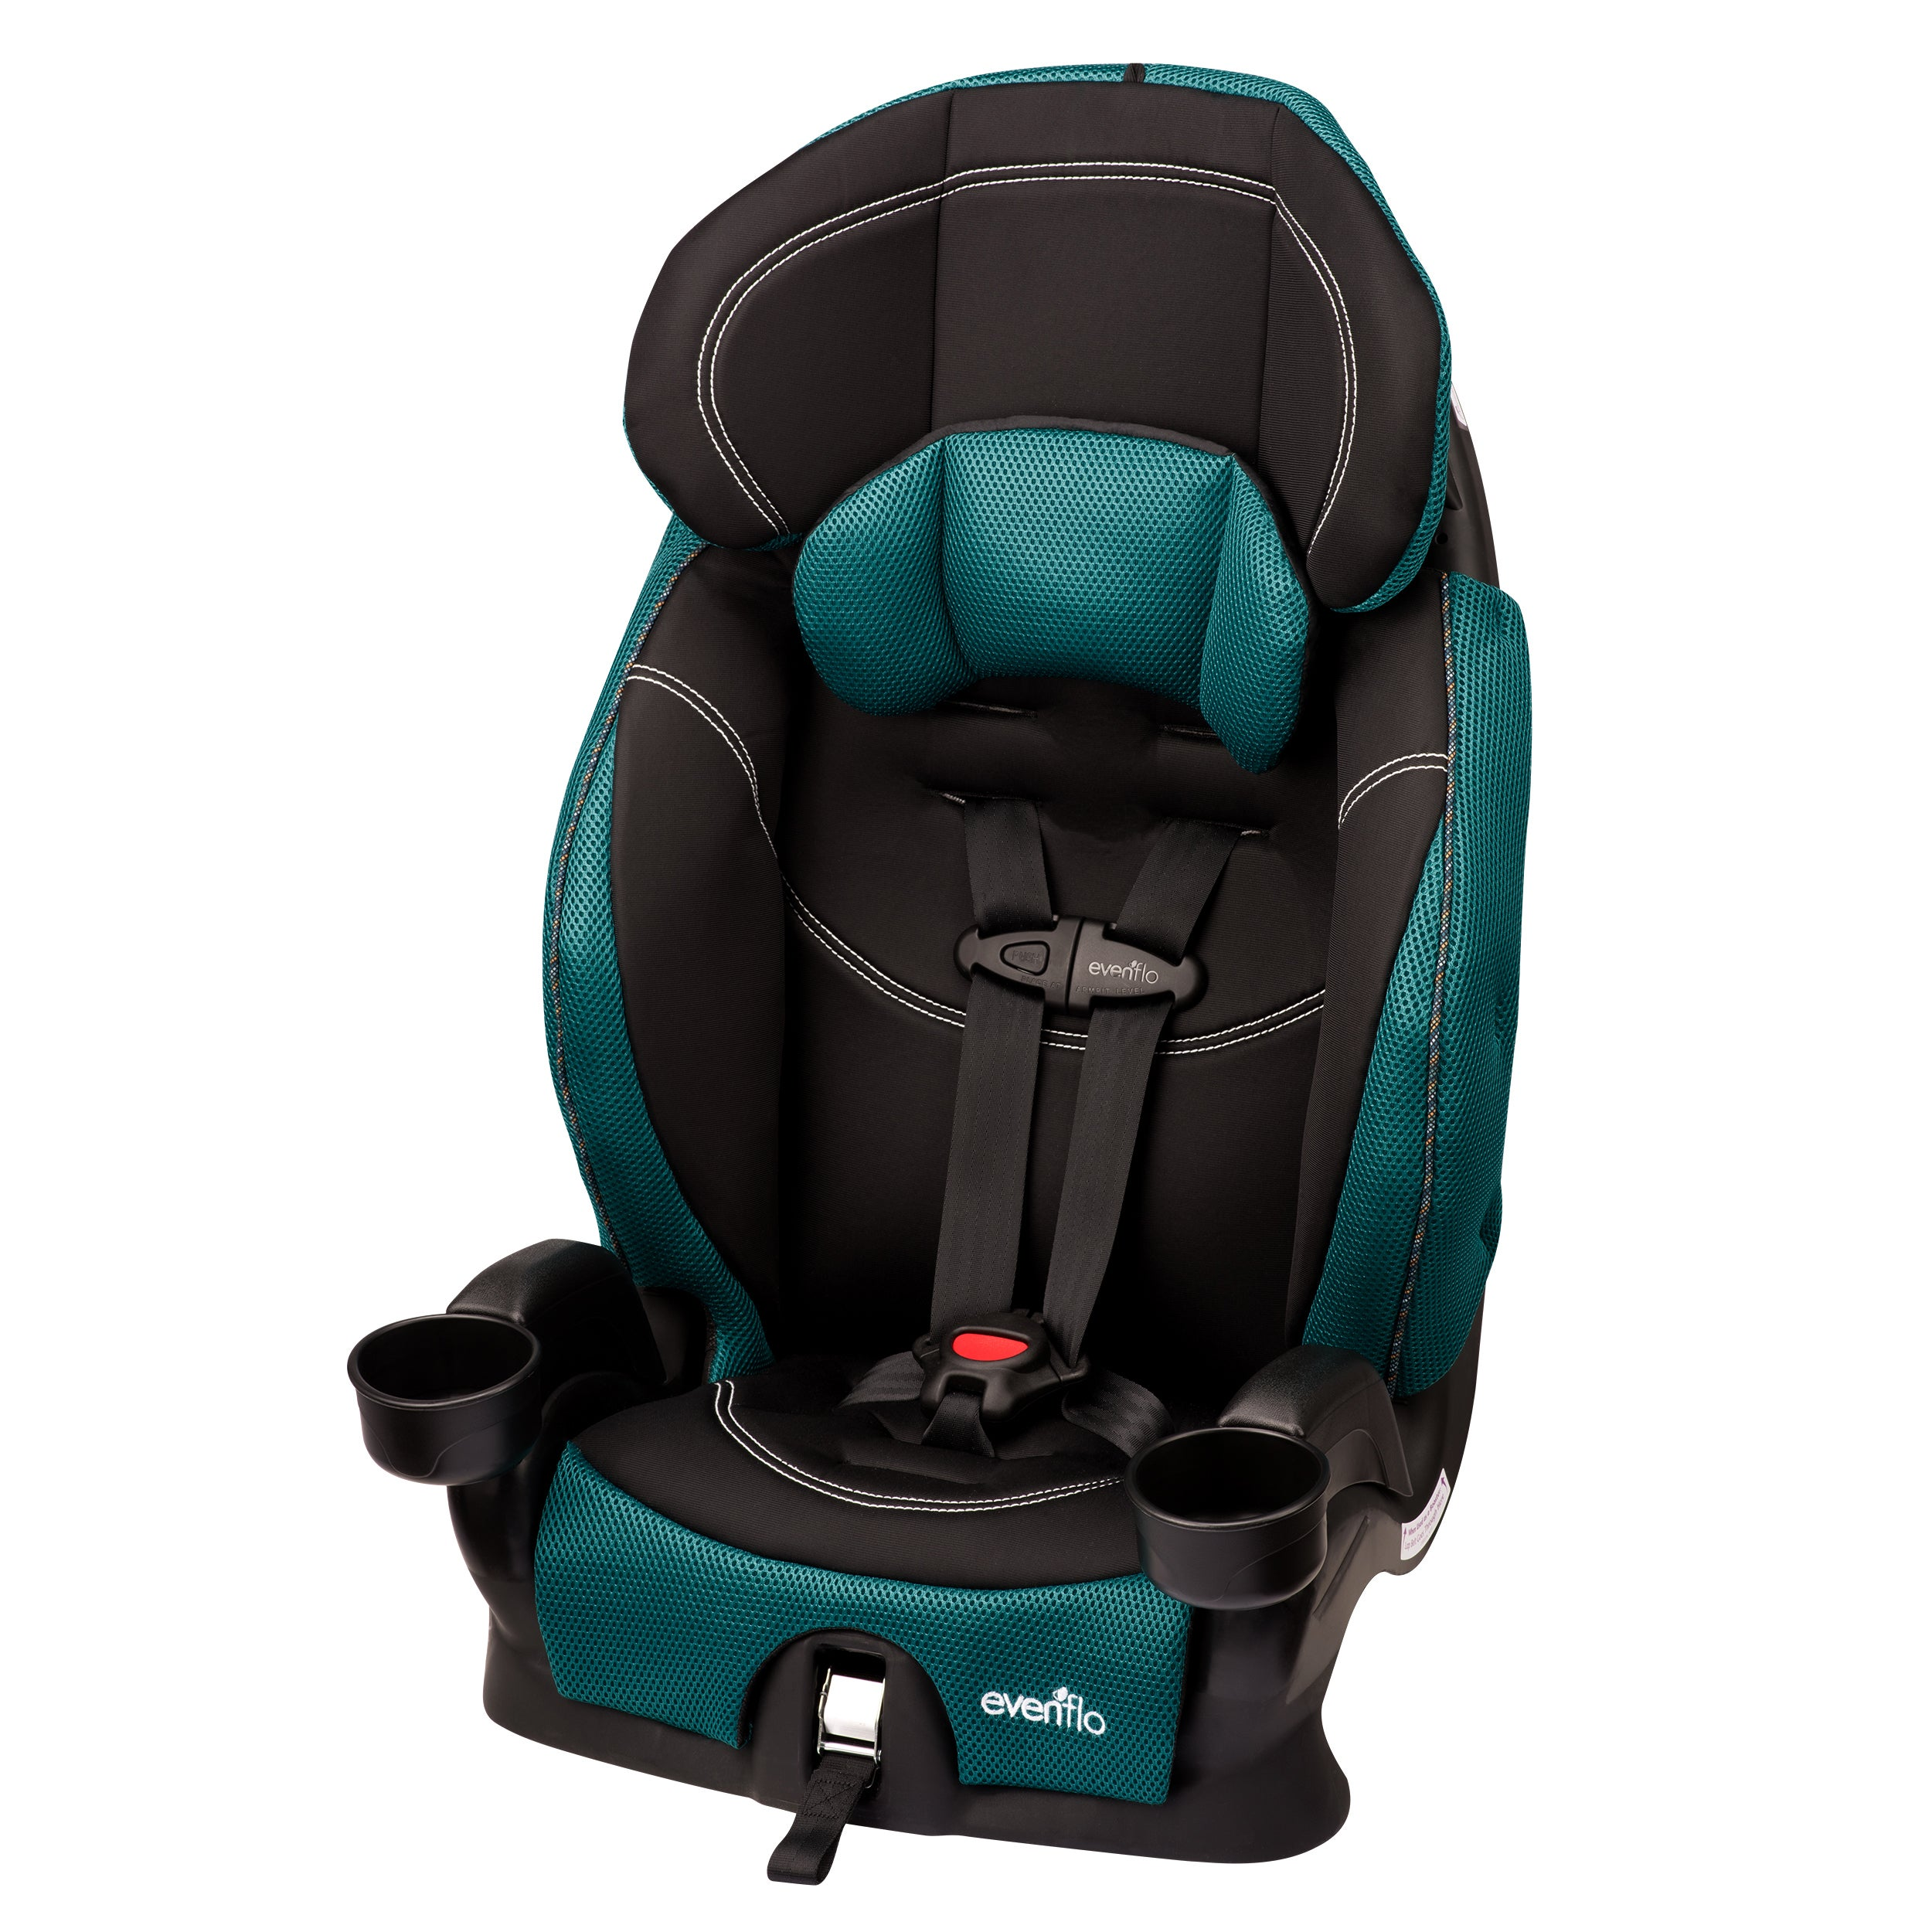 Evenflo Chase LX Booster Car Seat in Jubilee (Jubilee), G...